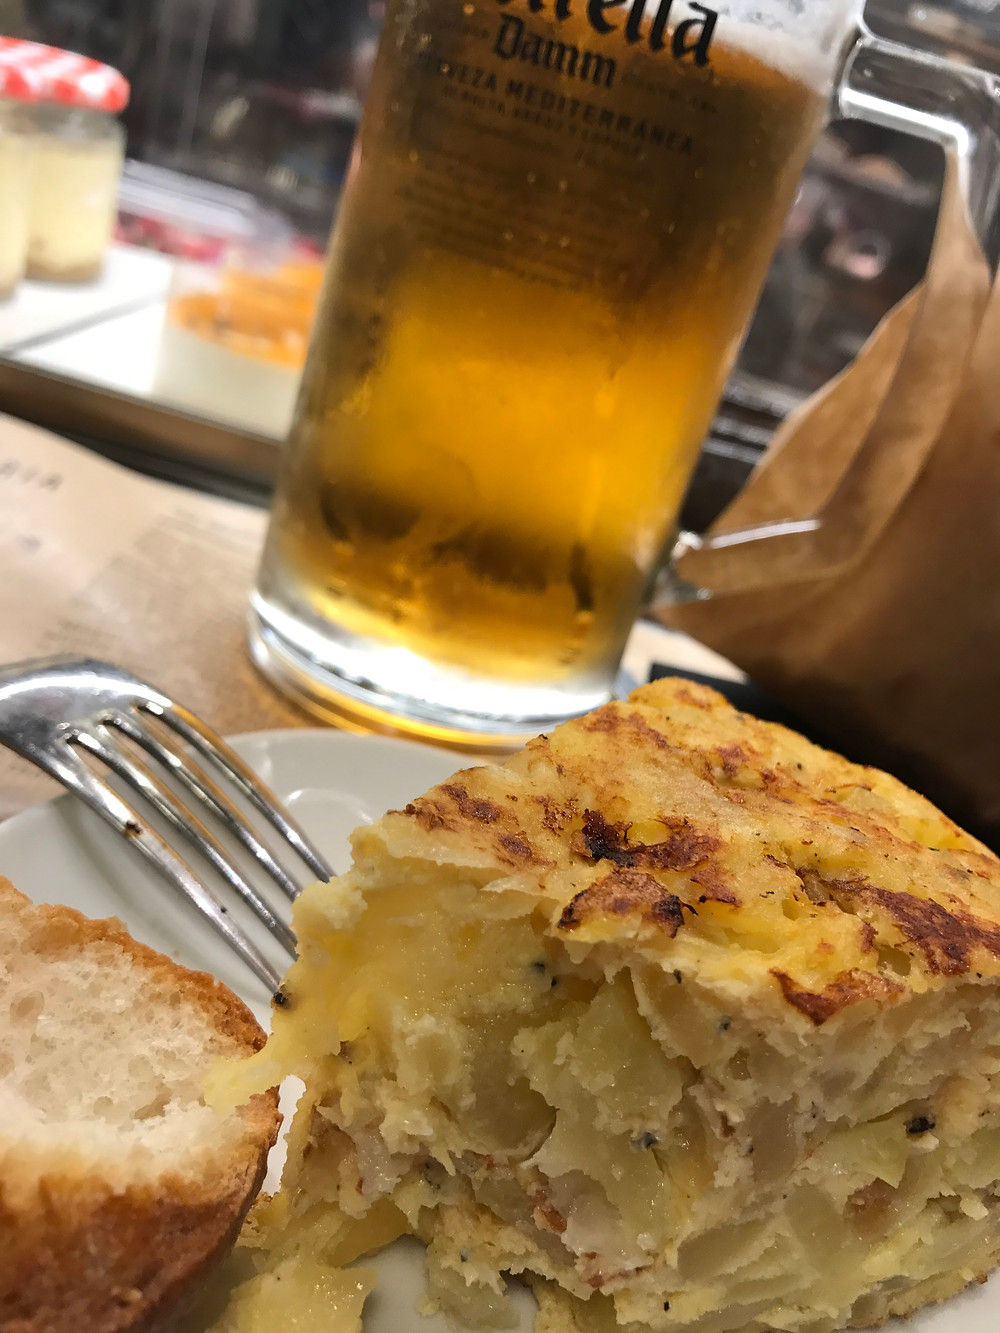 Spanish tortilla with a beer